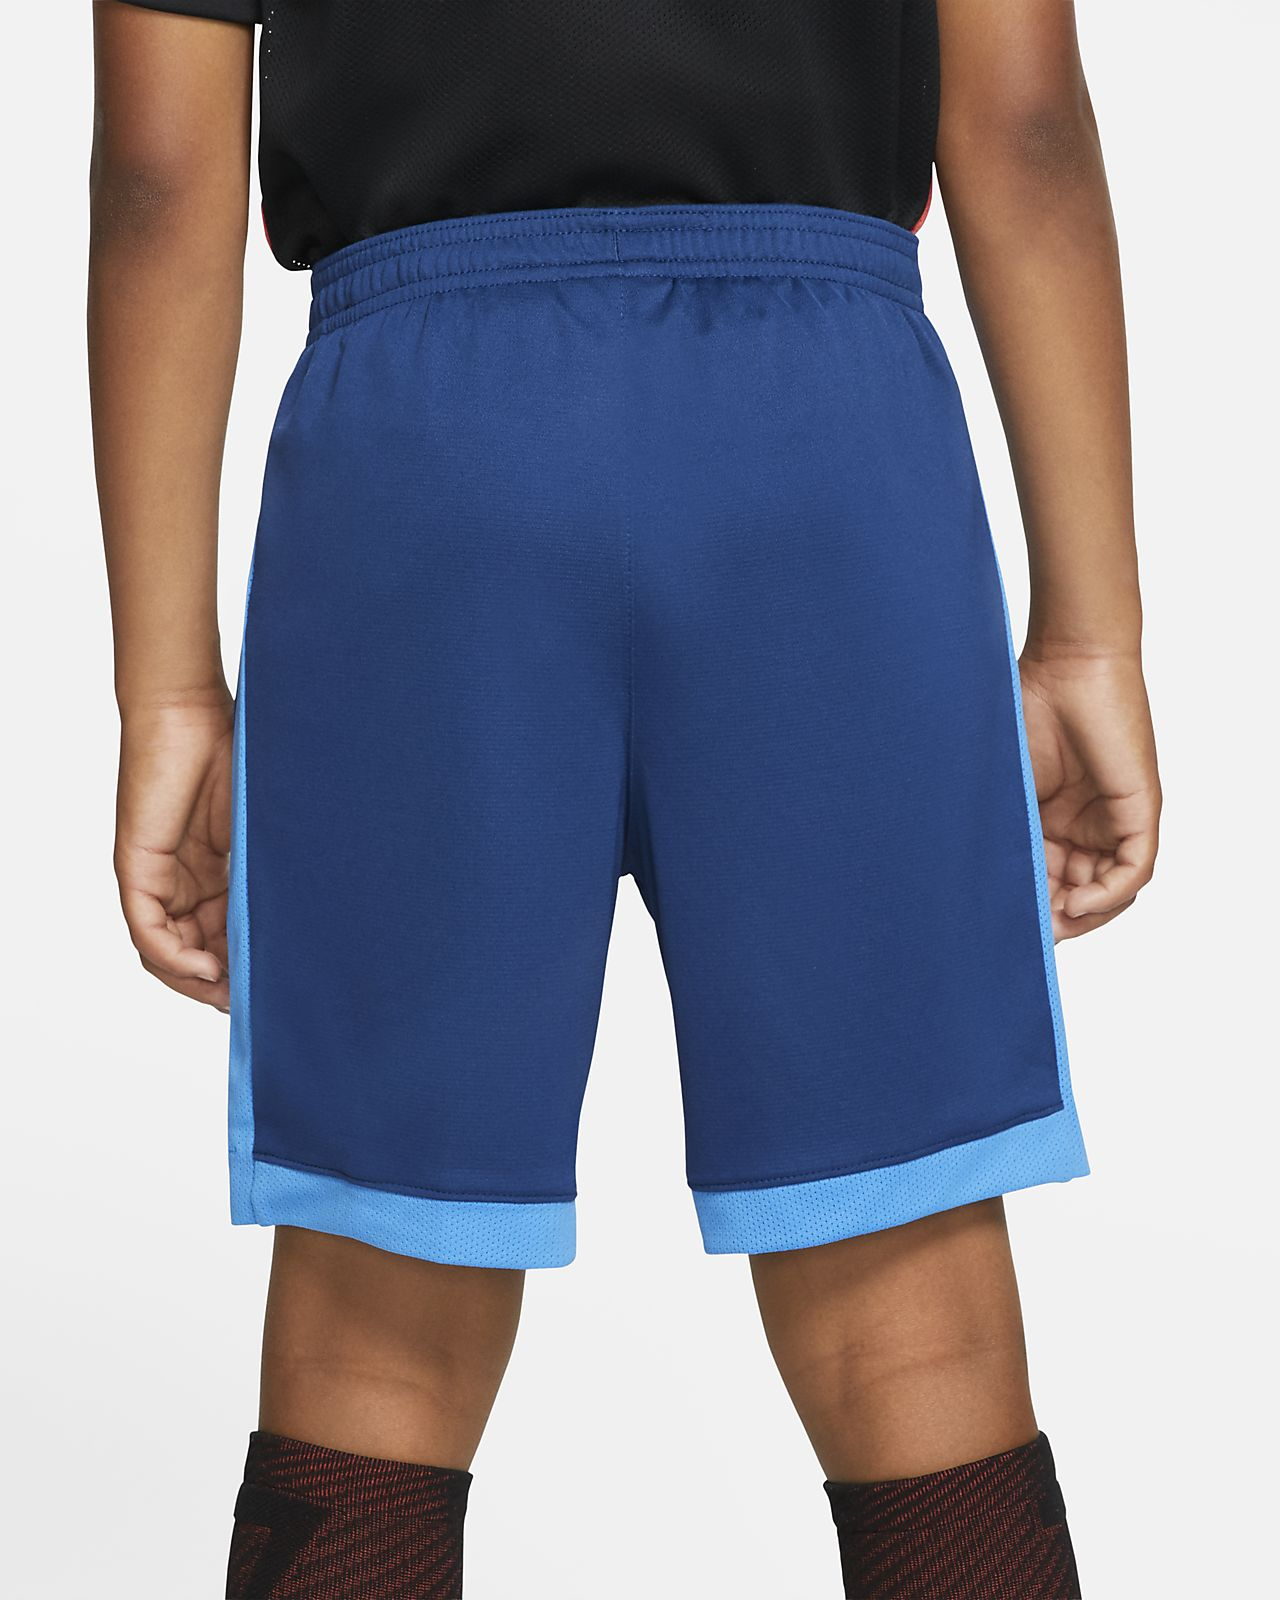 9160c0d03a8 Nike Dri-FIT Academy Big Kids' Soccer Shorts